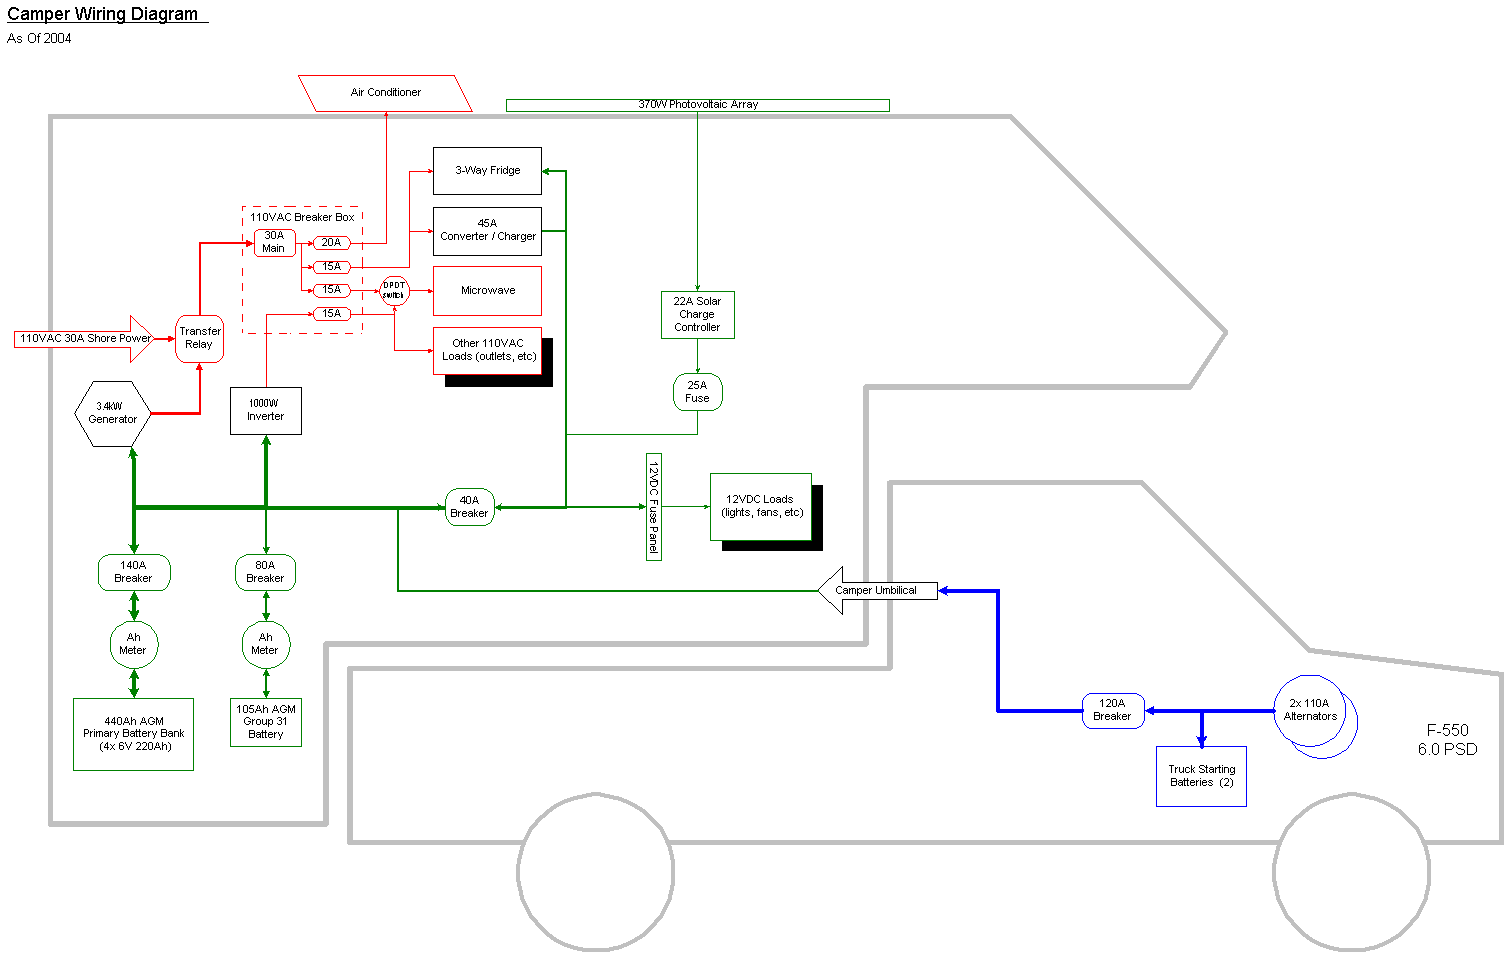 2004Diagram rv wiring diagrams 6 pole round wiring diagram \u2022 wiring diagrams truck camper wiring harness at readyjetset.co